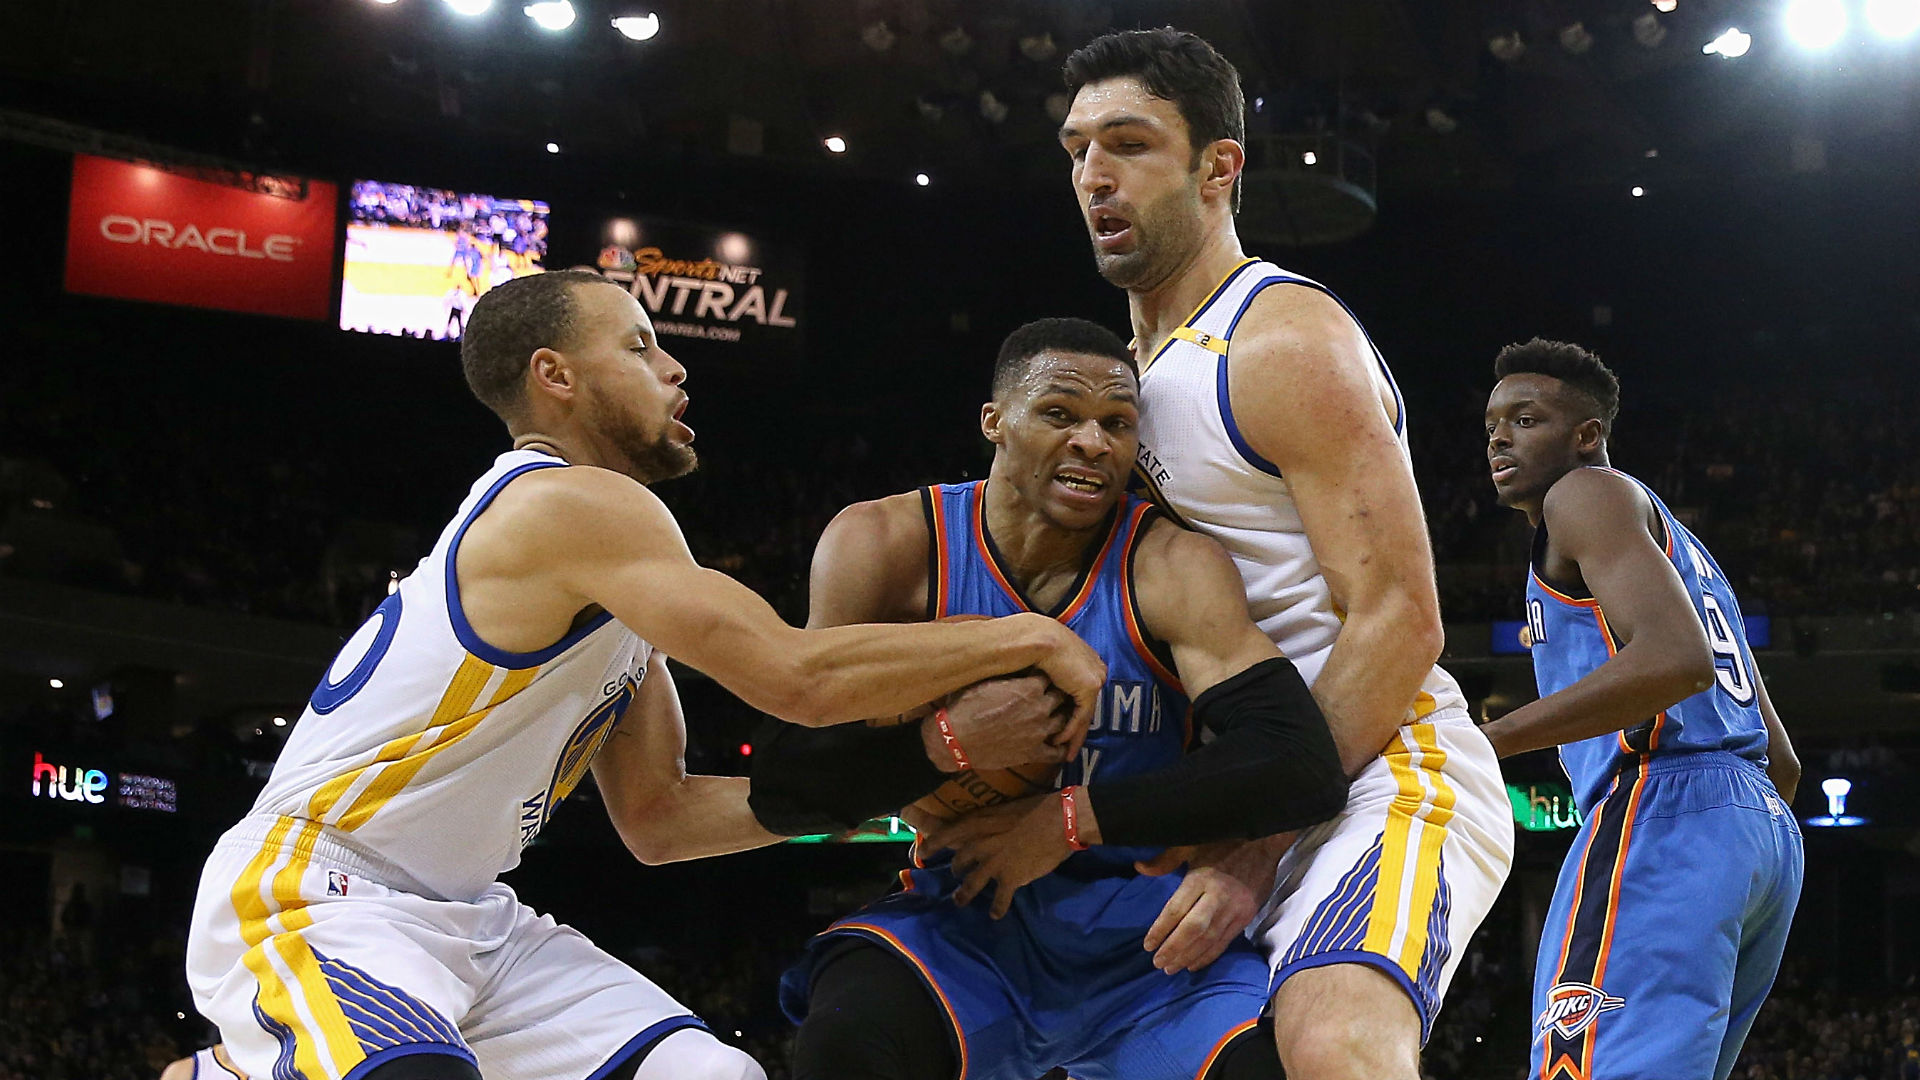 Kyrie Irving thinks National Basketball Association needs to address Zaza Pachulia